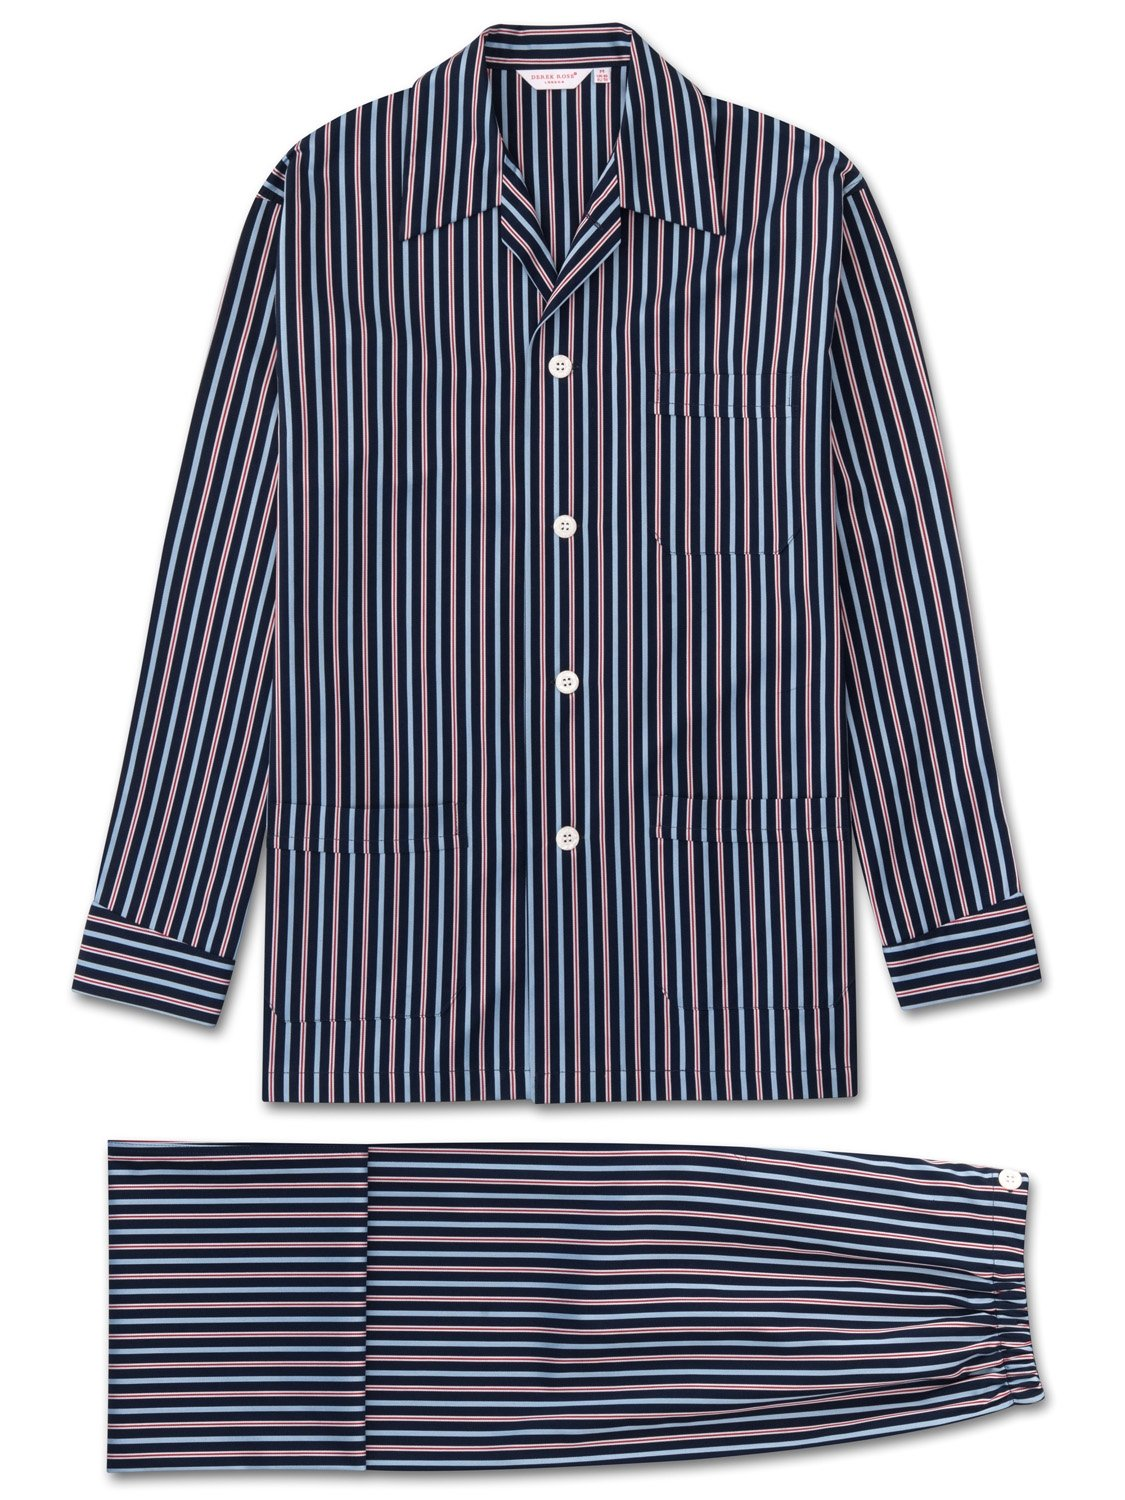 Men's Classic Fit Pyjamas Royal 206 Cotton Satin Stripe Navy